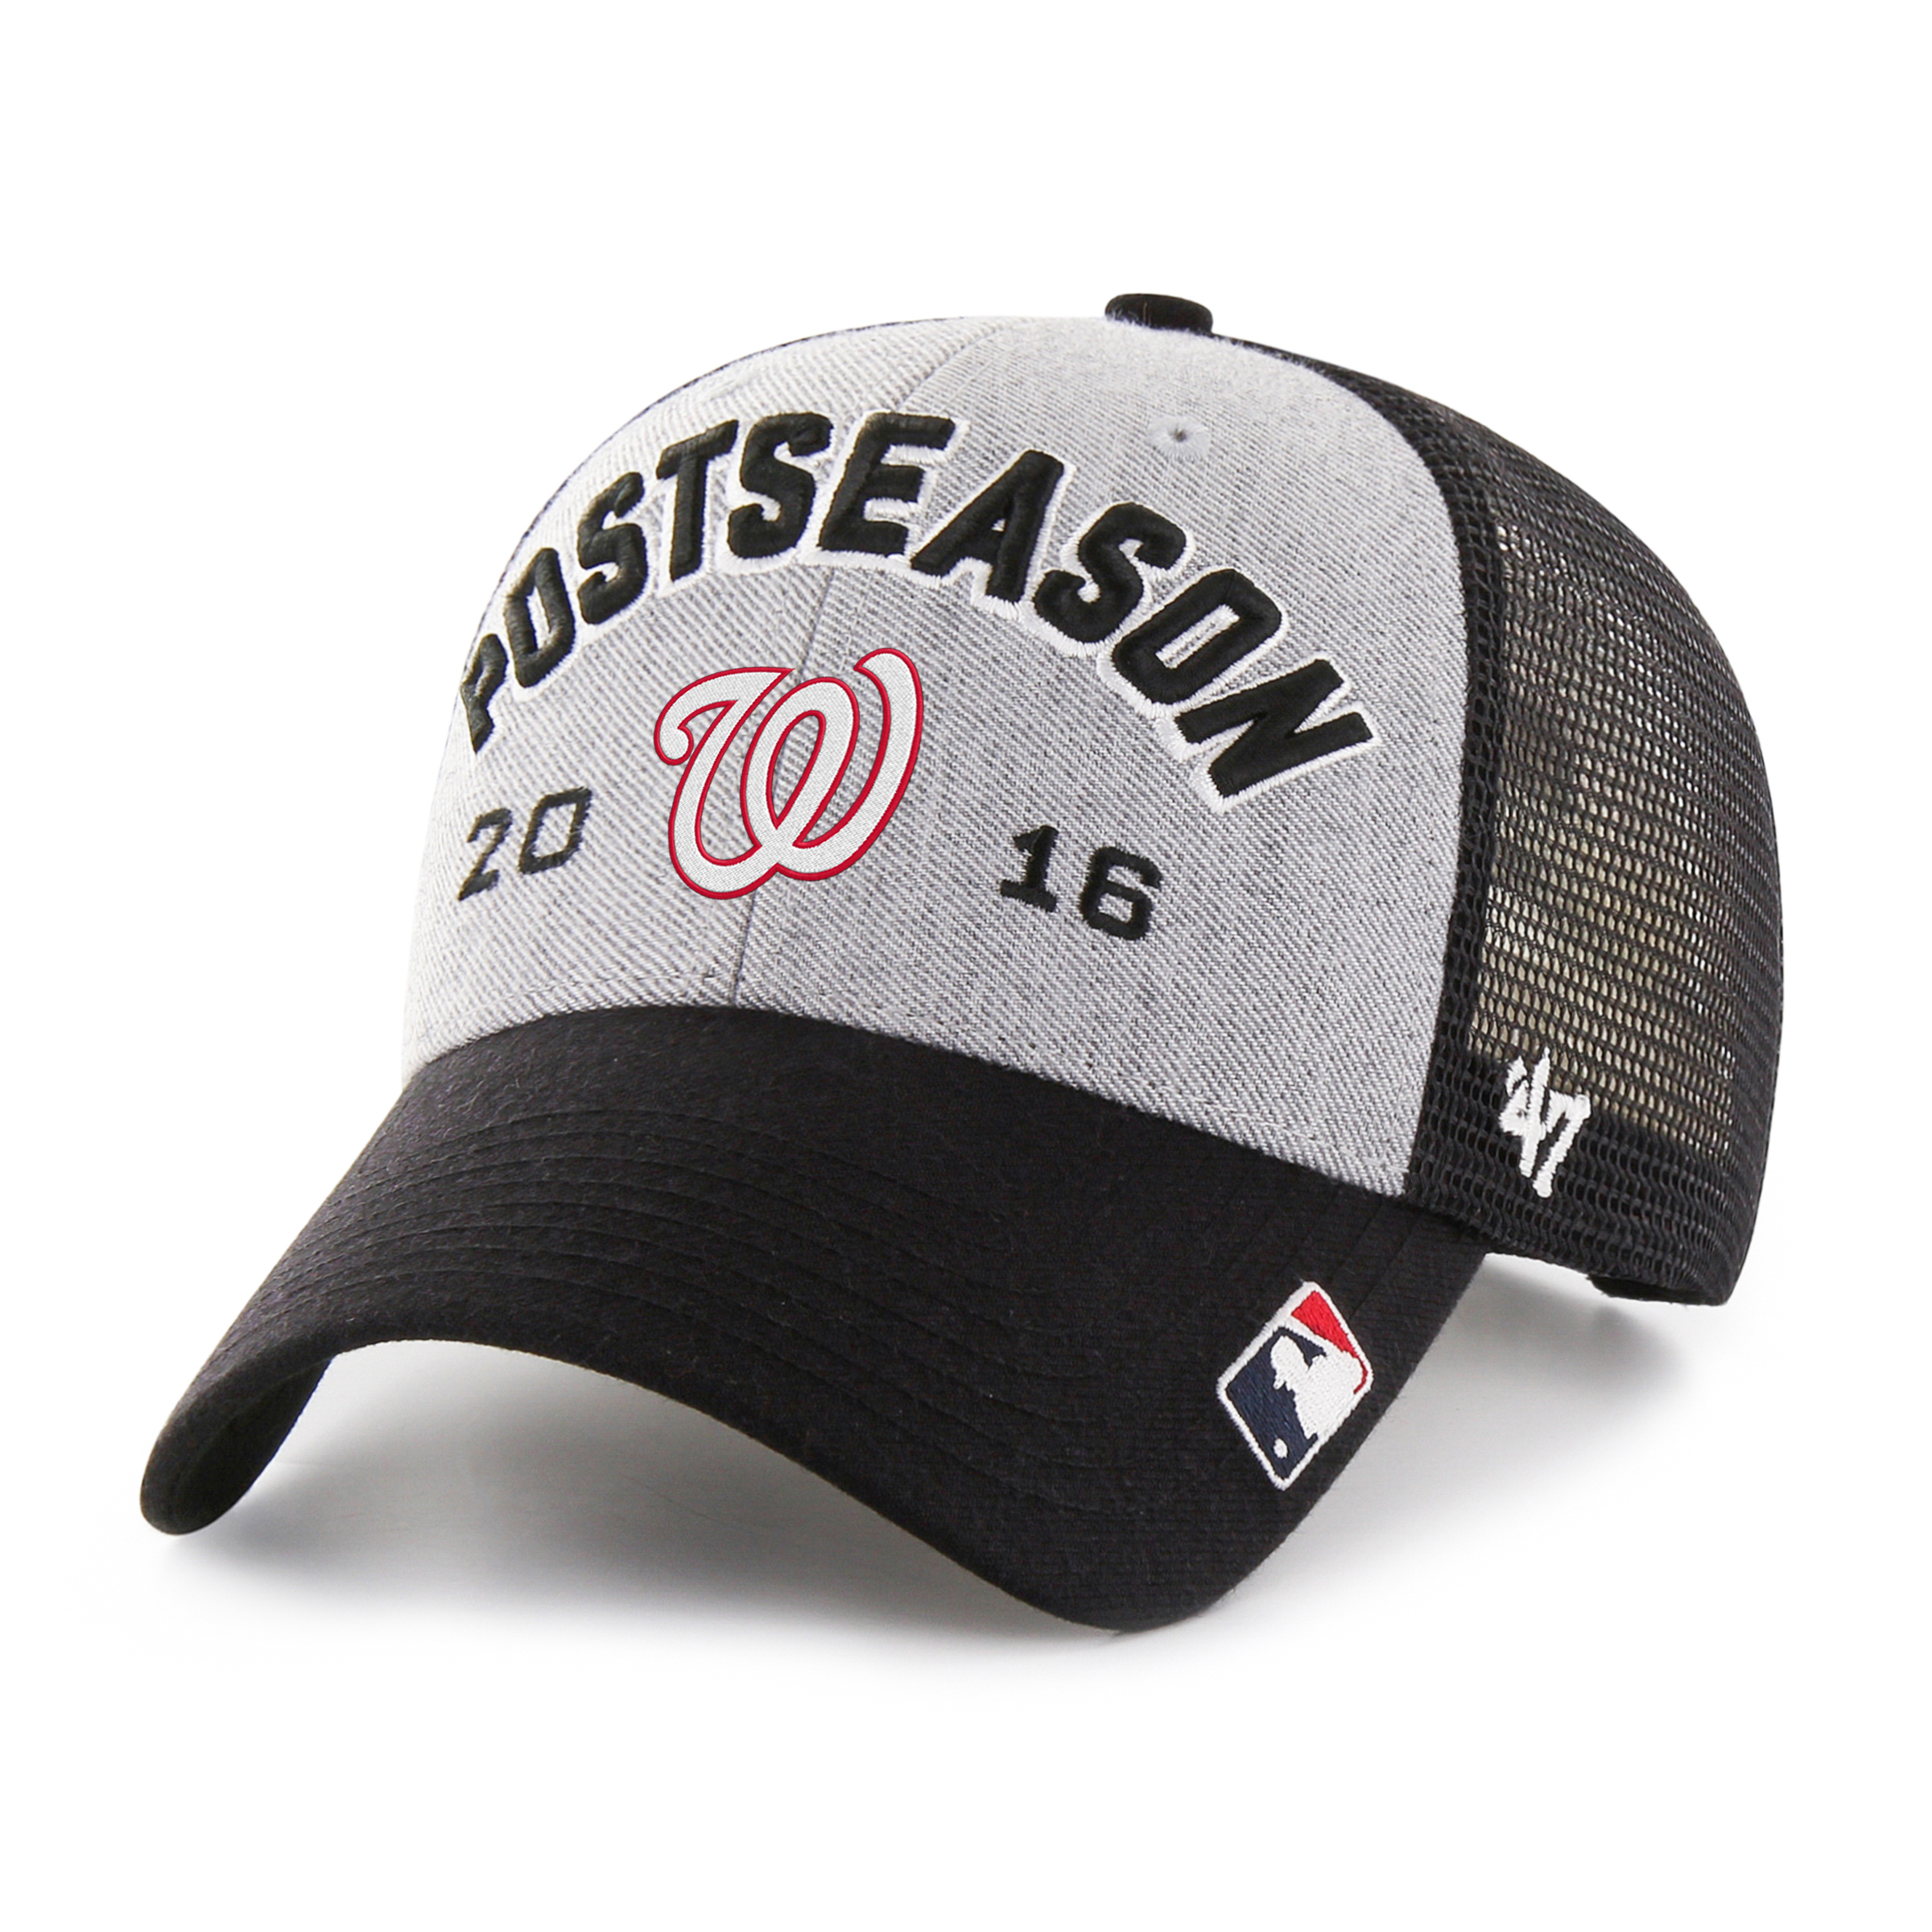 Washington Nationals '47 2016 NL East Division Champions Locker Room Adjustable Hat - Gray - OSFA